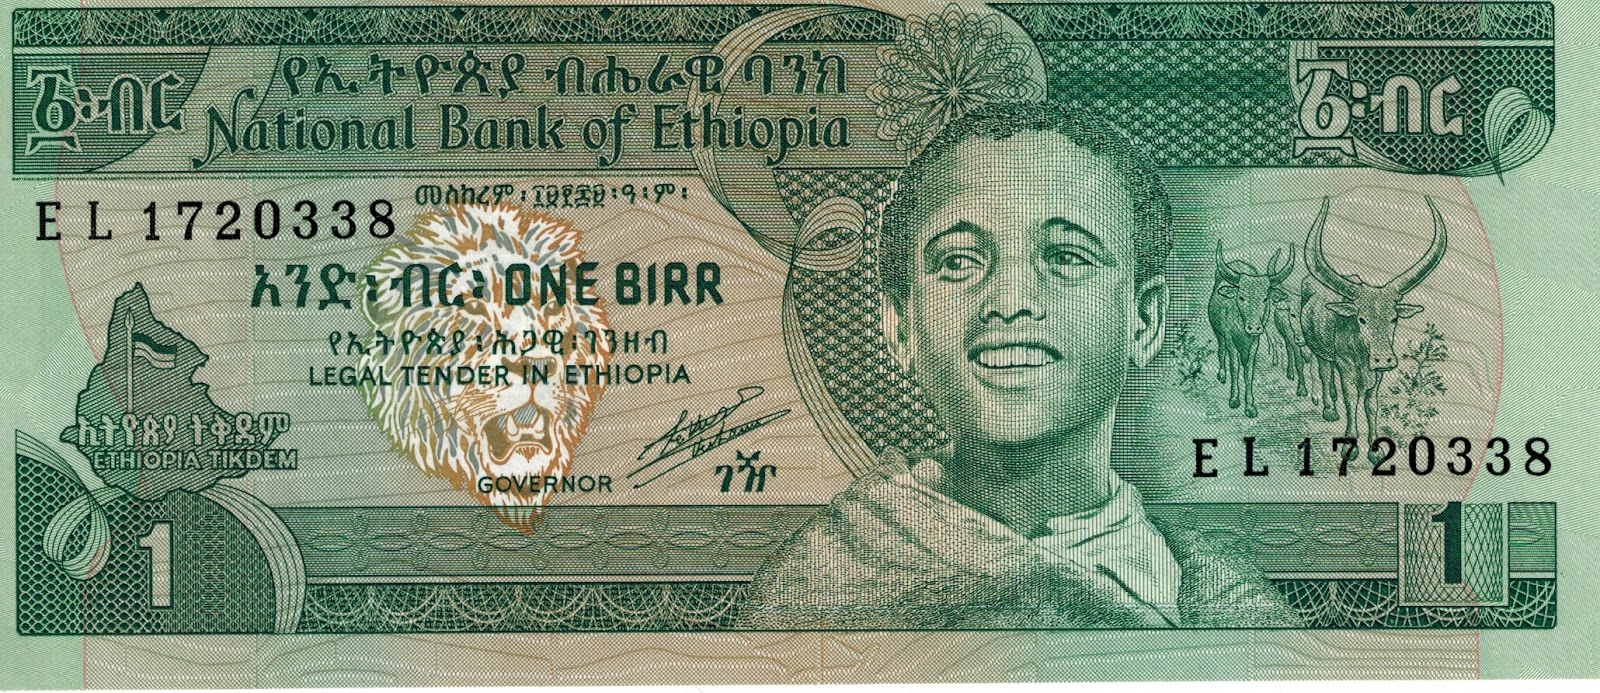 Currency In Ethiopia Is The Birr From Amharic Word For Silver One Made Up Of 100 Cents Or Centimes Twenty Years Ago Exchange Rate